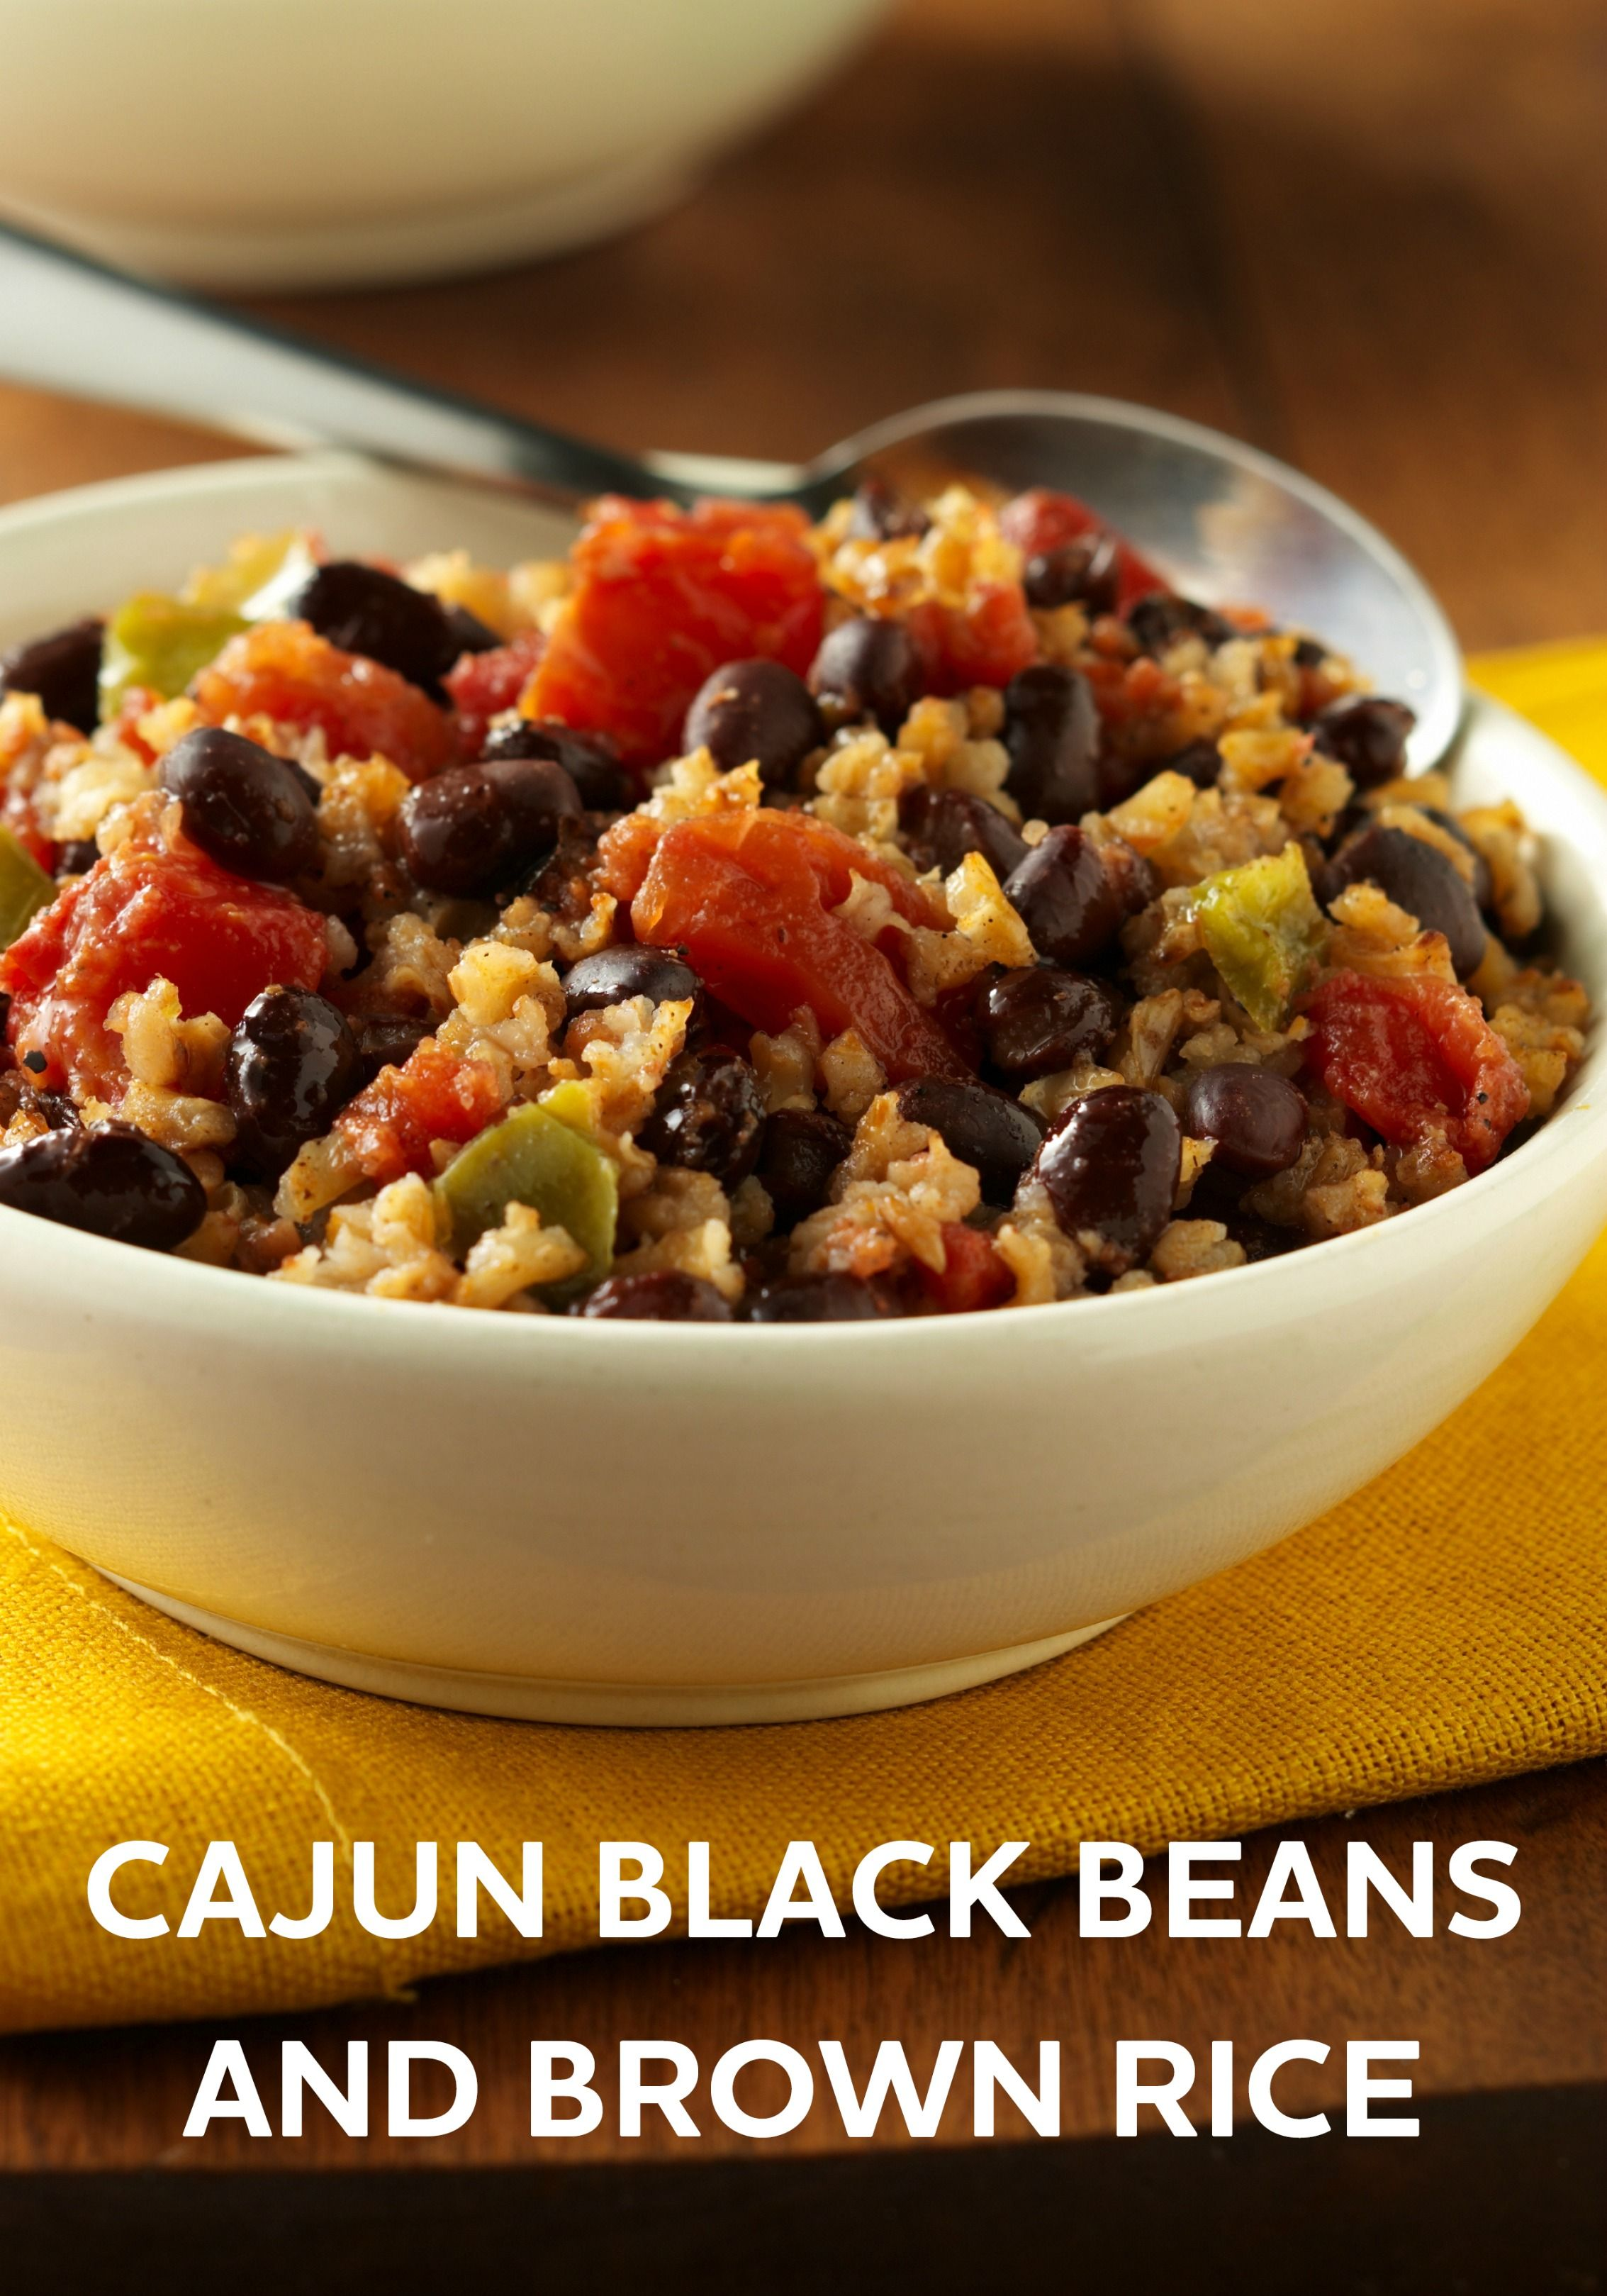 Cajun black beans and brown rice recipe dinner tonight brown cajun black beans and brown rice rice recipes for dinnerbrown forumfinder Choice Image